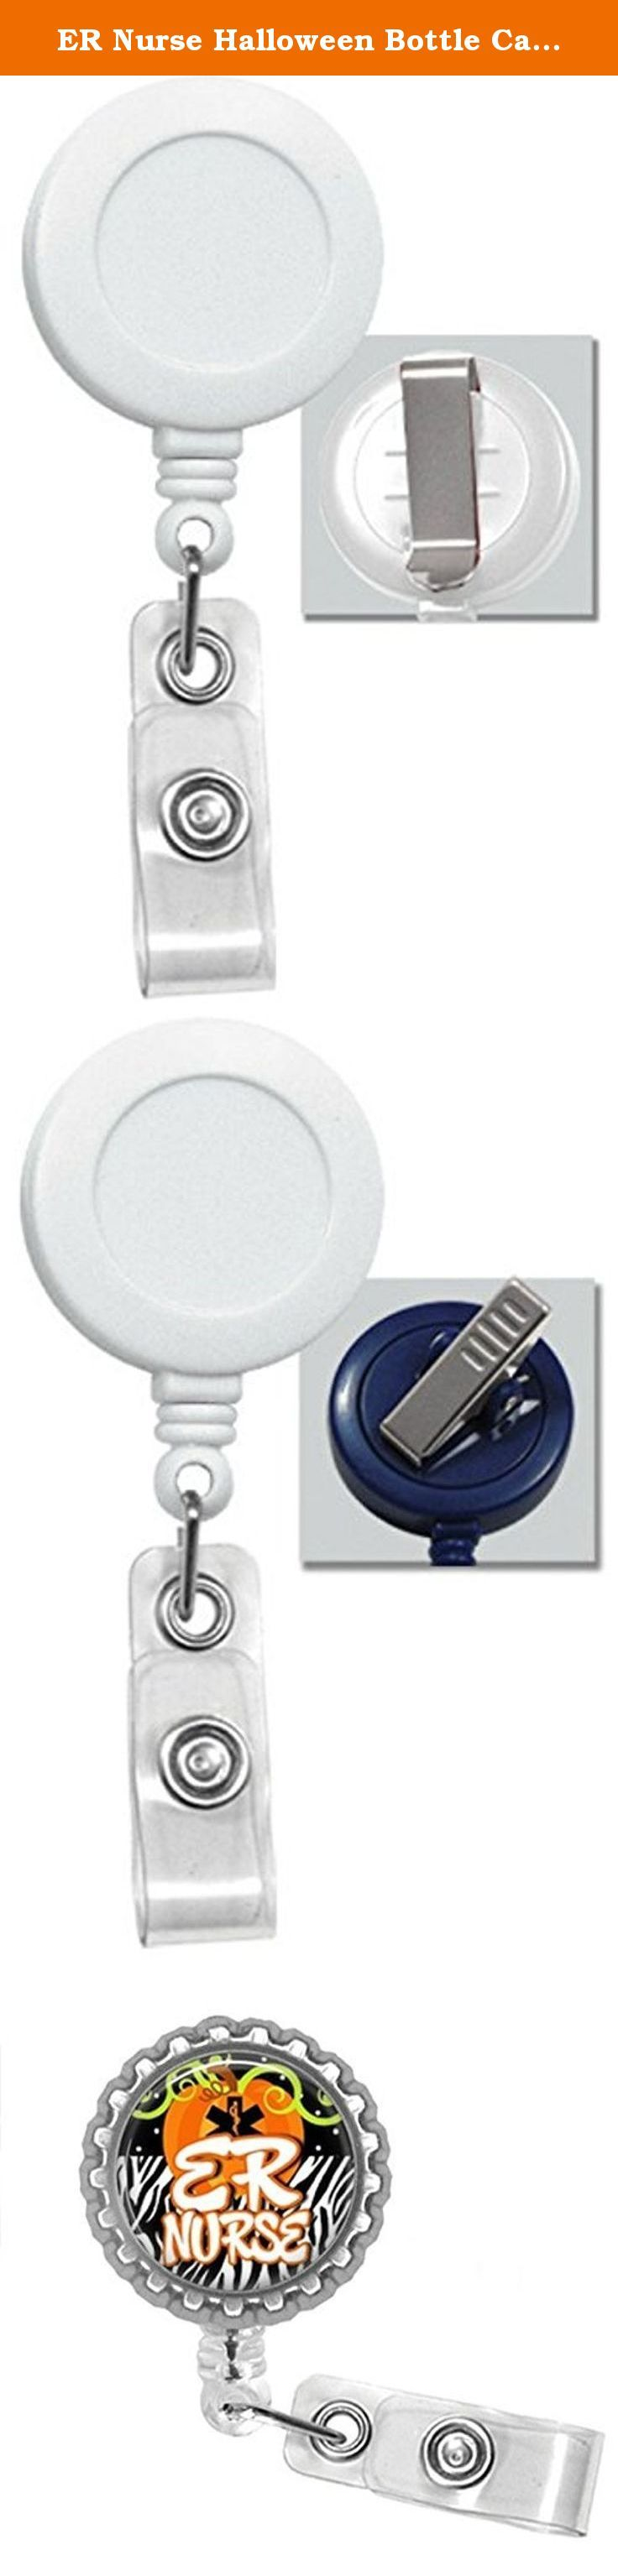 ER Nurse Halloween Bottle Cap Retractable Badge ID Holder. ER nurse halloween bottlecap badge reel is a great item to hang your work or school Id's from. Badge is 1.25 in diameter. The badge also is a Retractable badge with your choice of either a clip or a swivel alligator clip Pictures 2 is a slide clip picture 3 is an alligator clip. The retractable cord is 24 inches Badge reel says ER Nurse on it. The color of the badge reel is white.